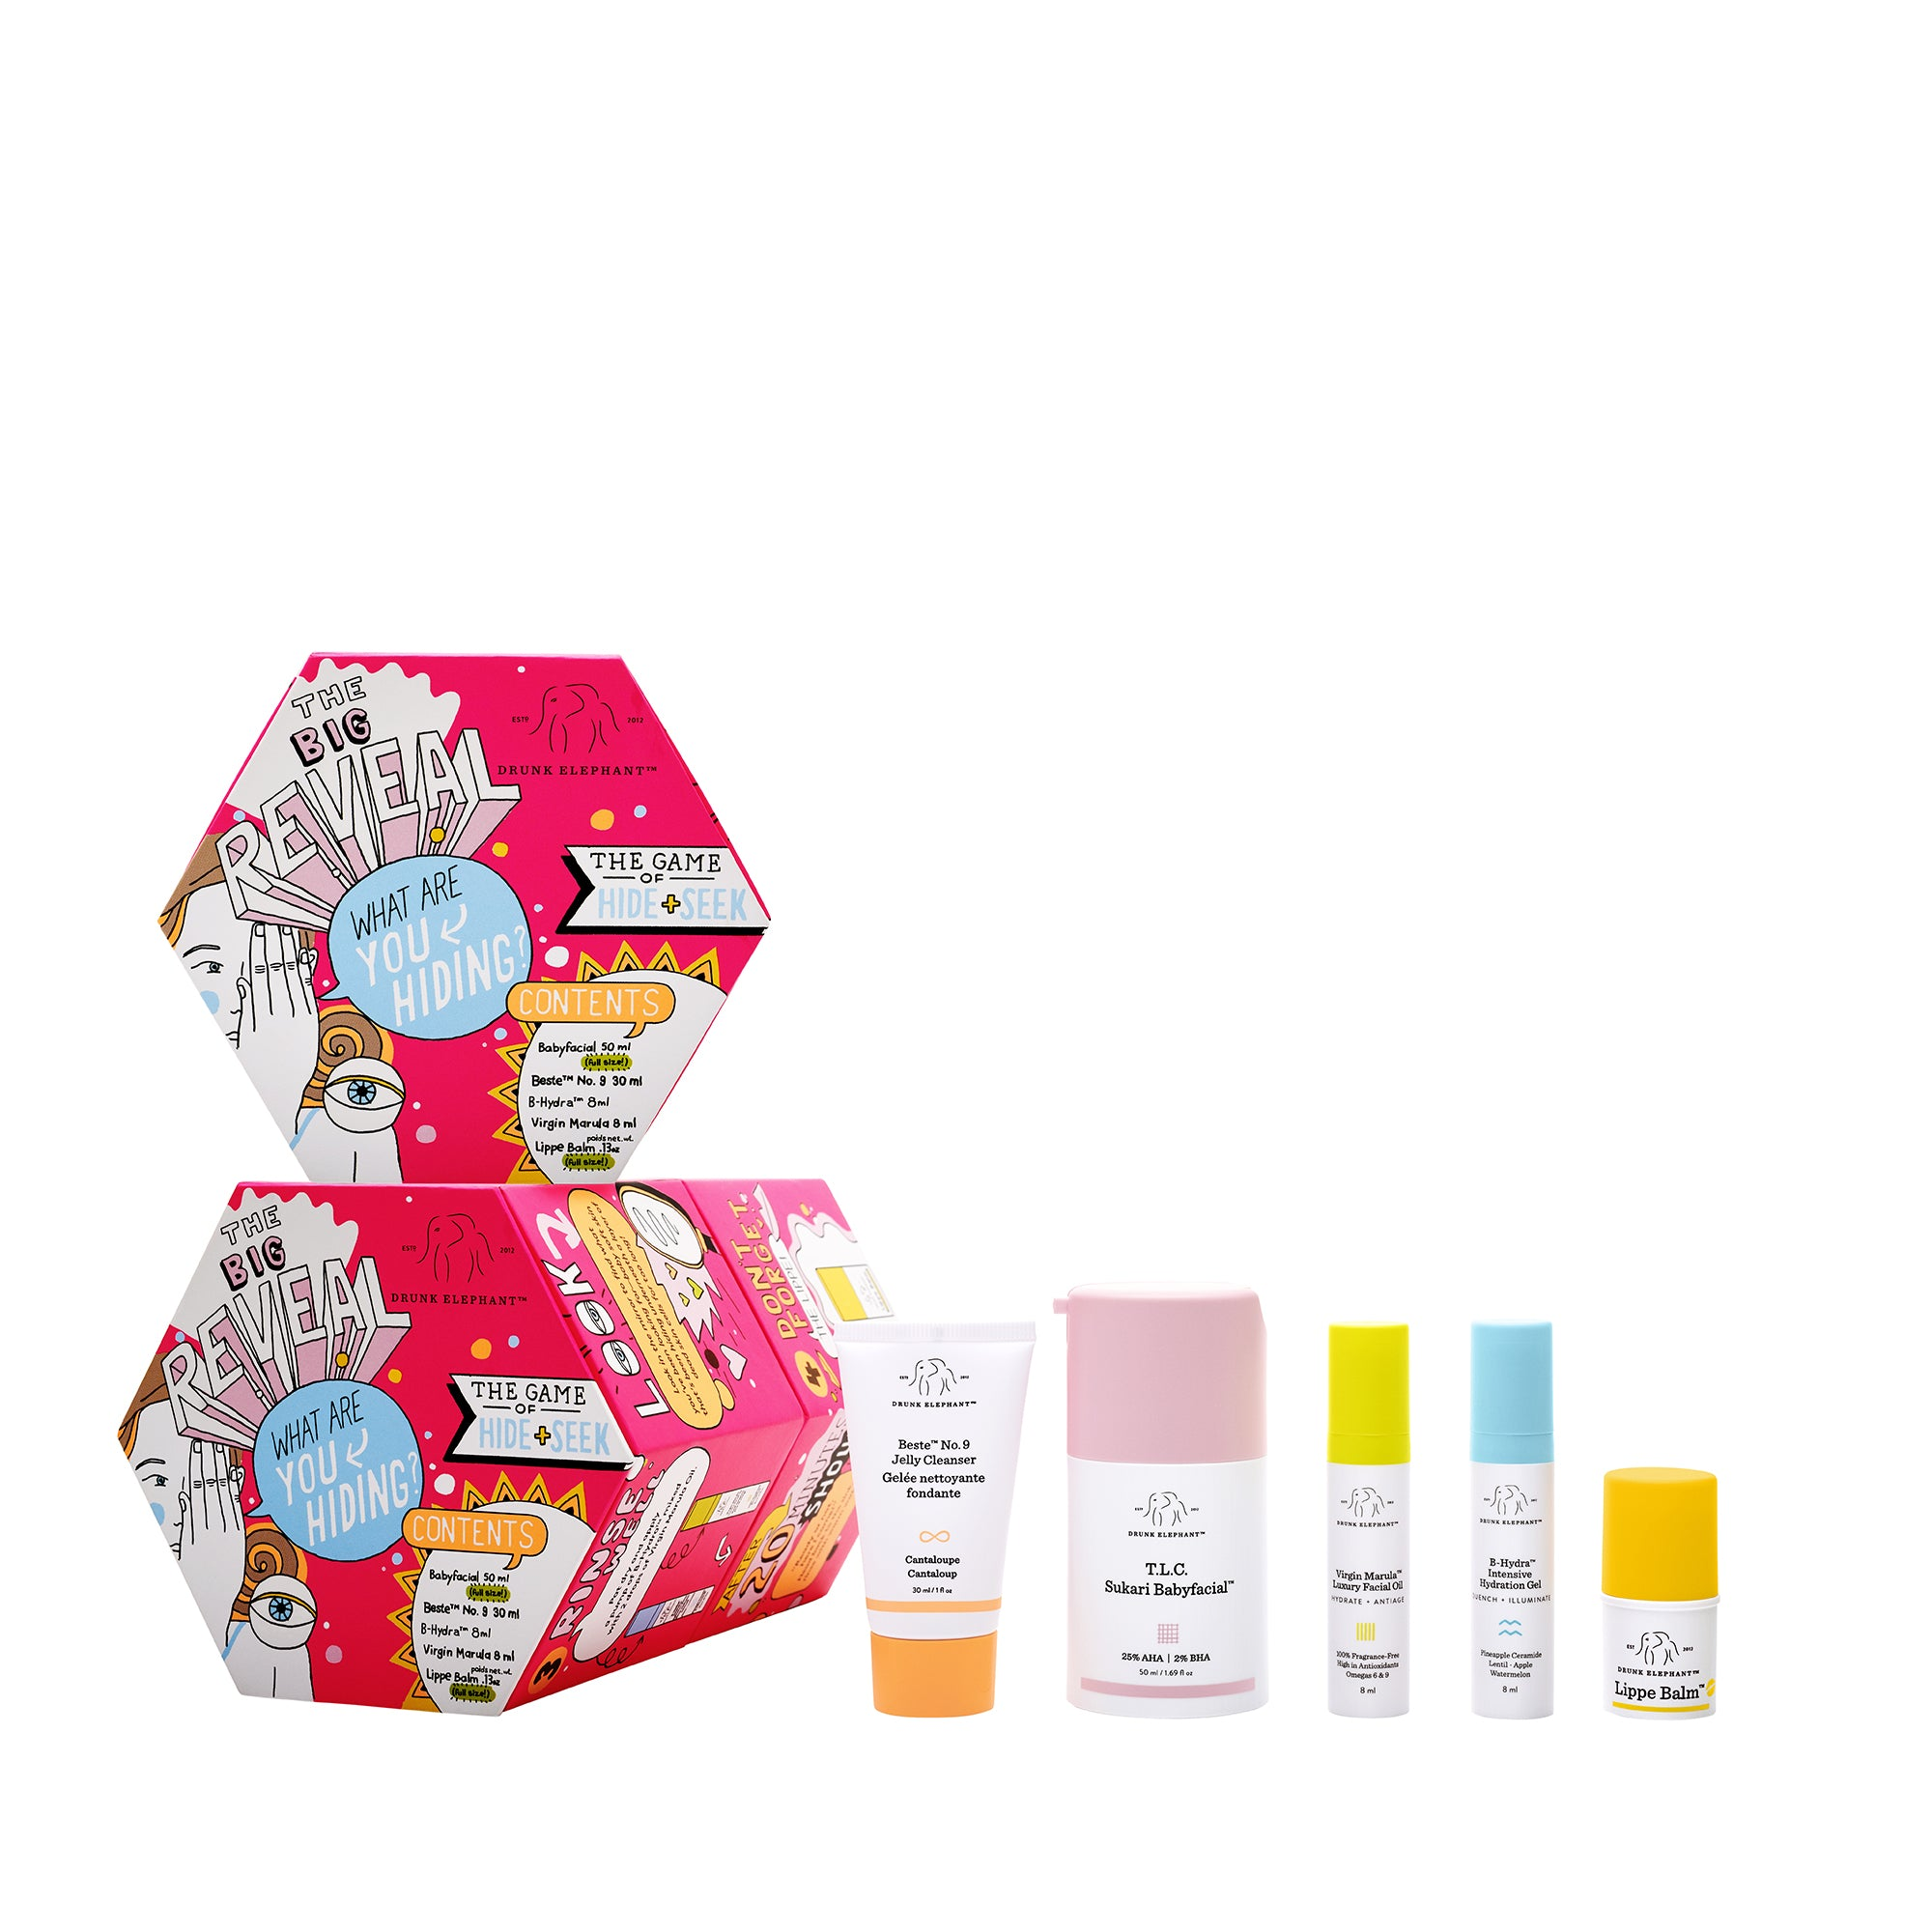 The Big Reveal™ Kit ($132 Value)